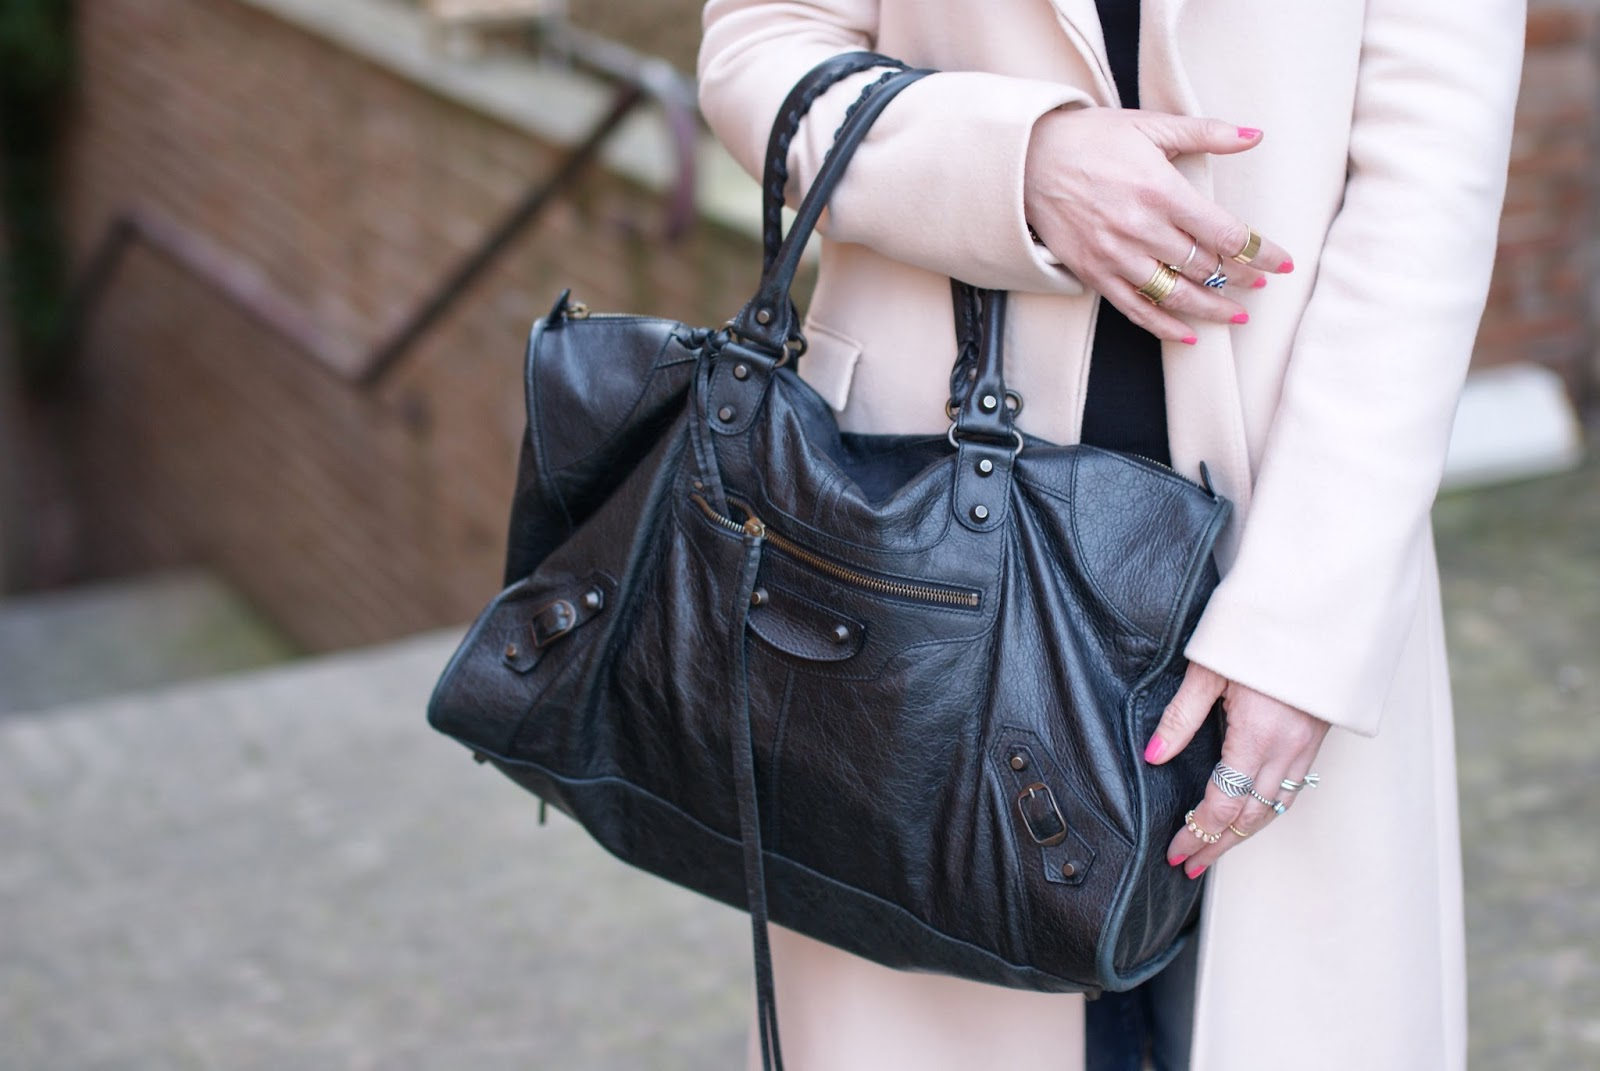 Balenciaga work bag, Fashion and Cookies, fashion blogger